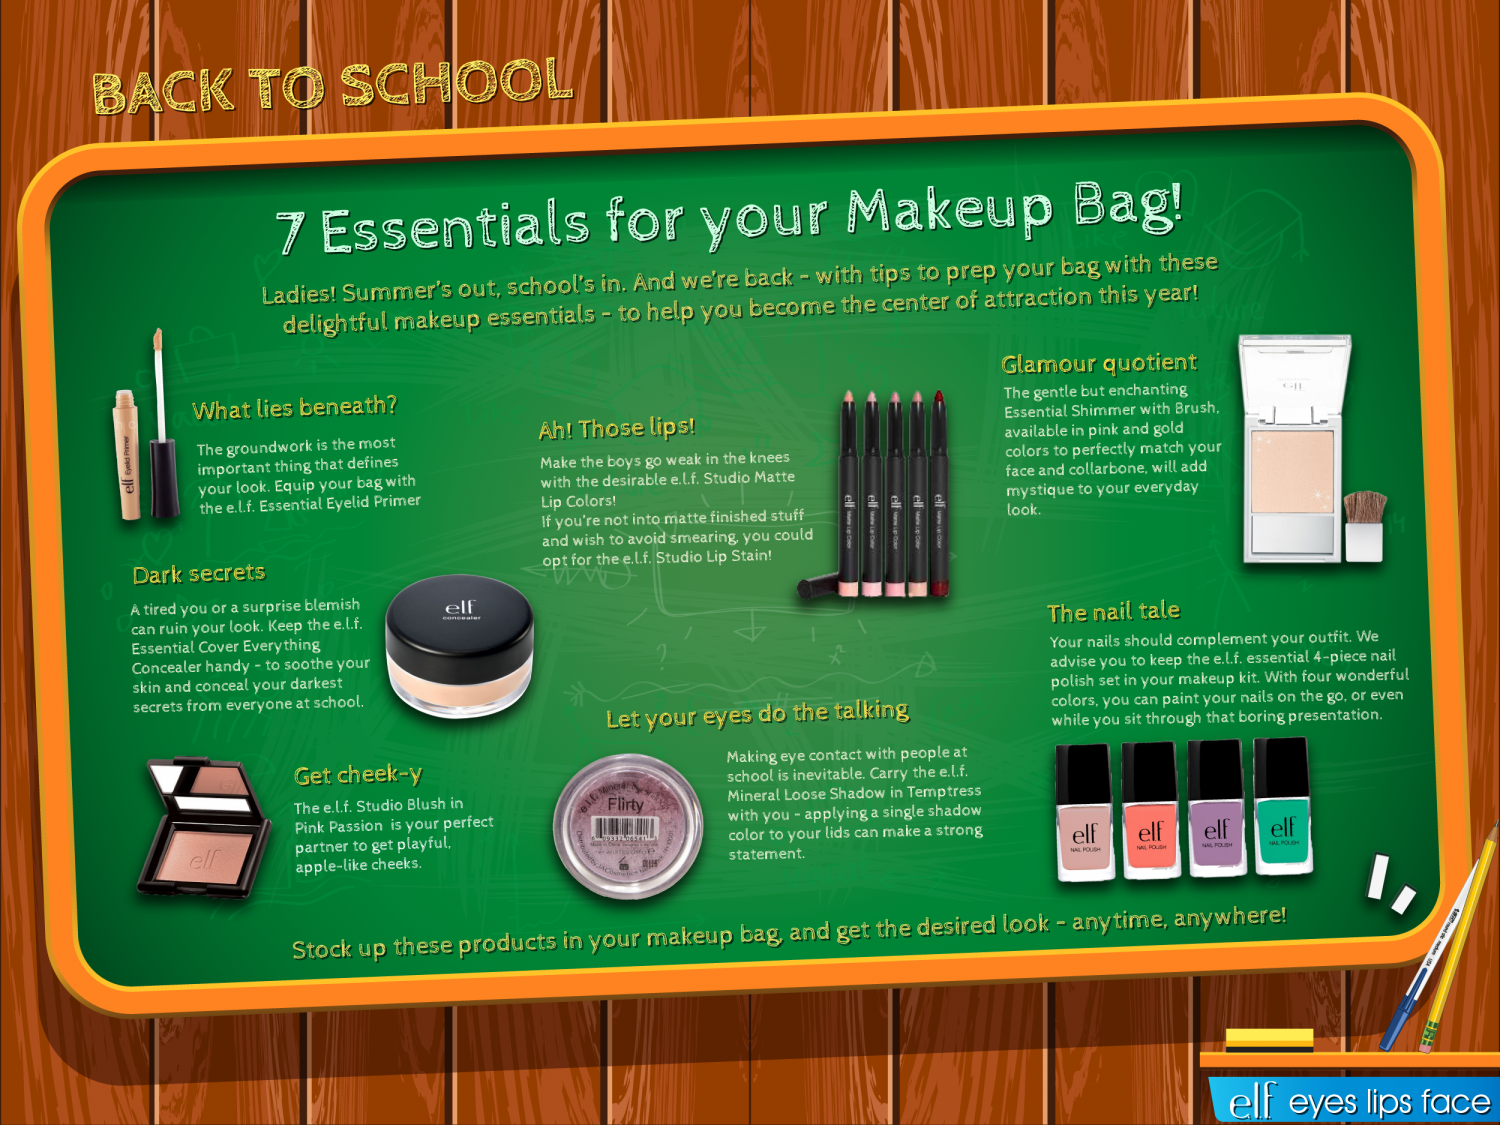 Back to school 7 essentials for your makeup bag Infographic